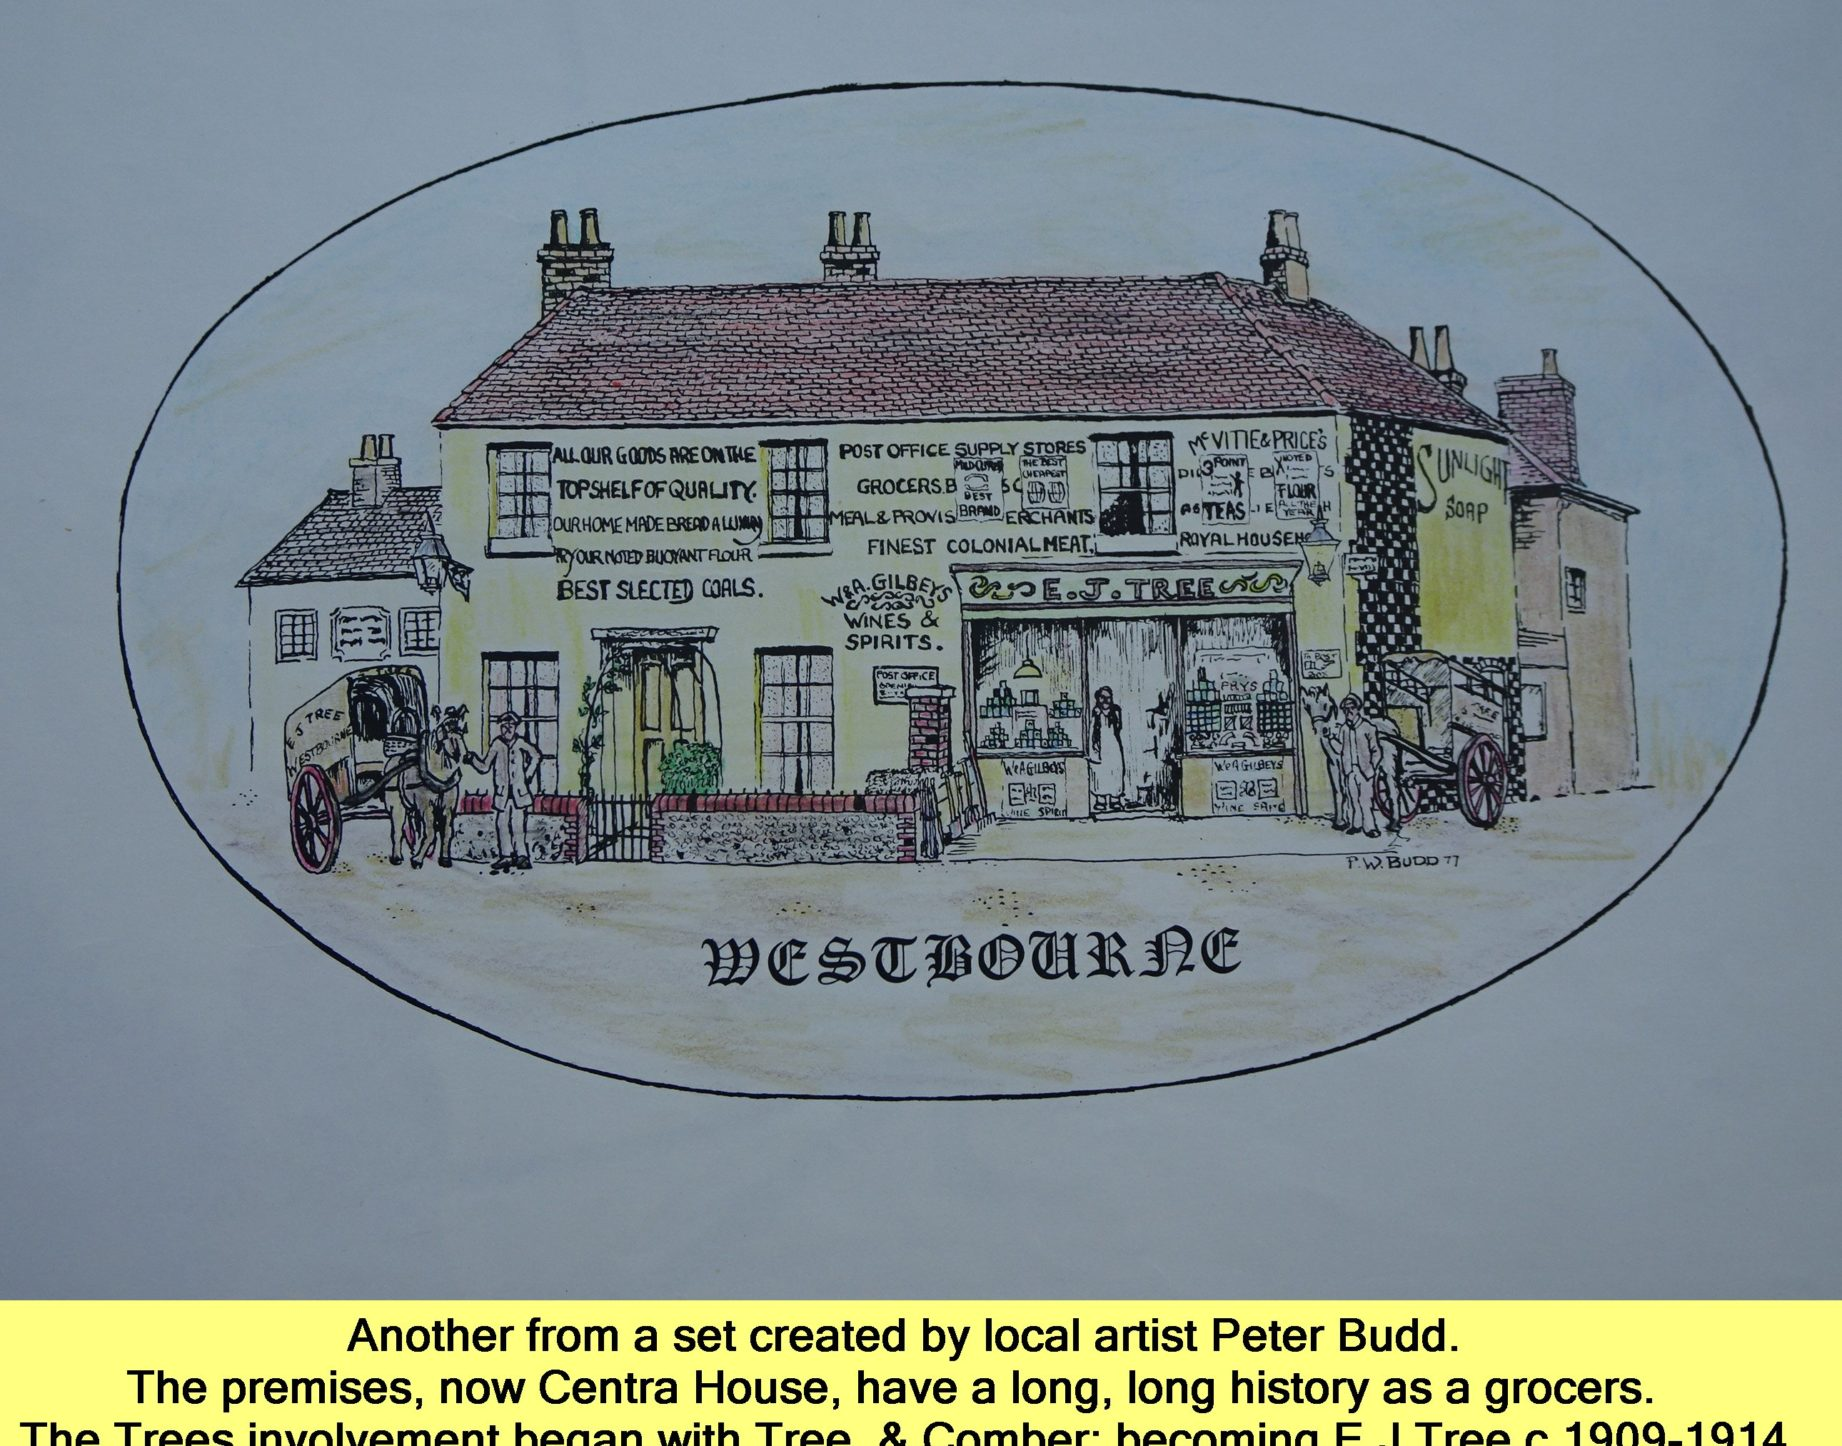 WESTBOURNE HISTORY PHOTO, SQUARE, GROCER, TREE, COMBER. MANCHIP, COUNTRY STORE, CENTRA